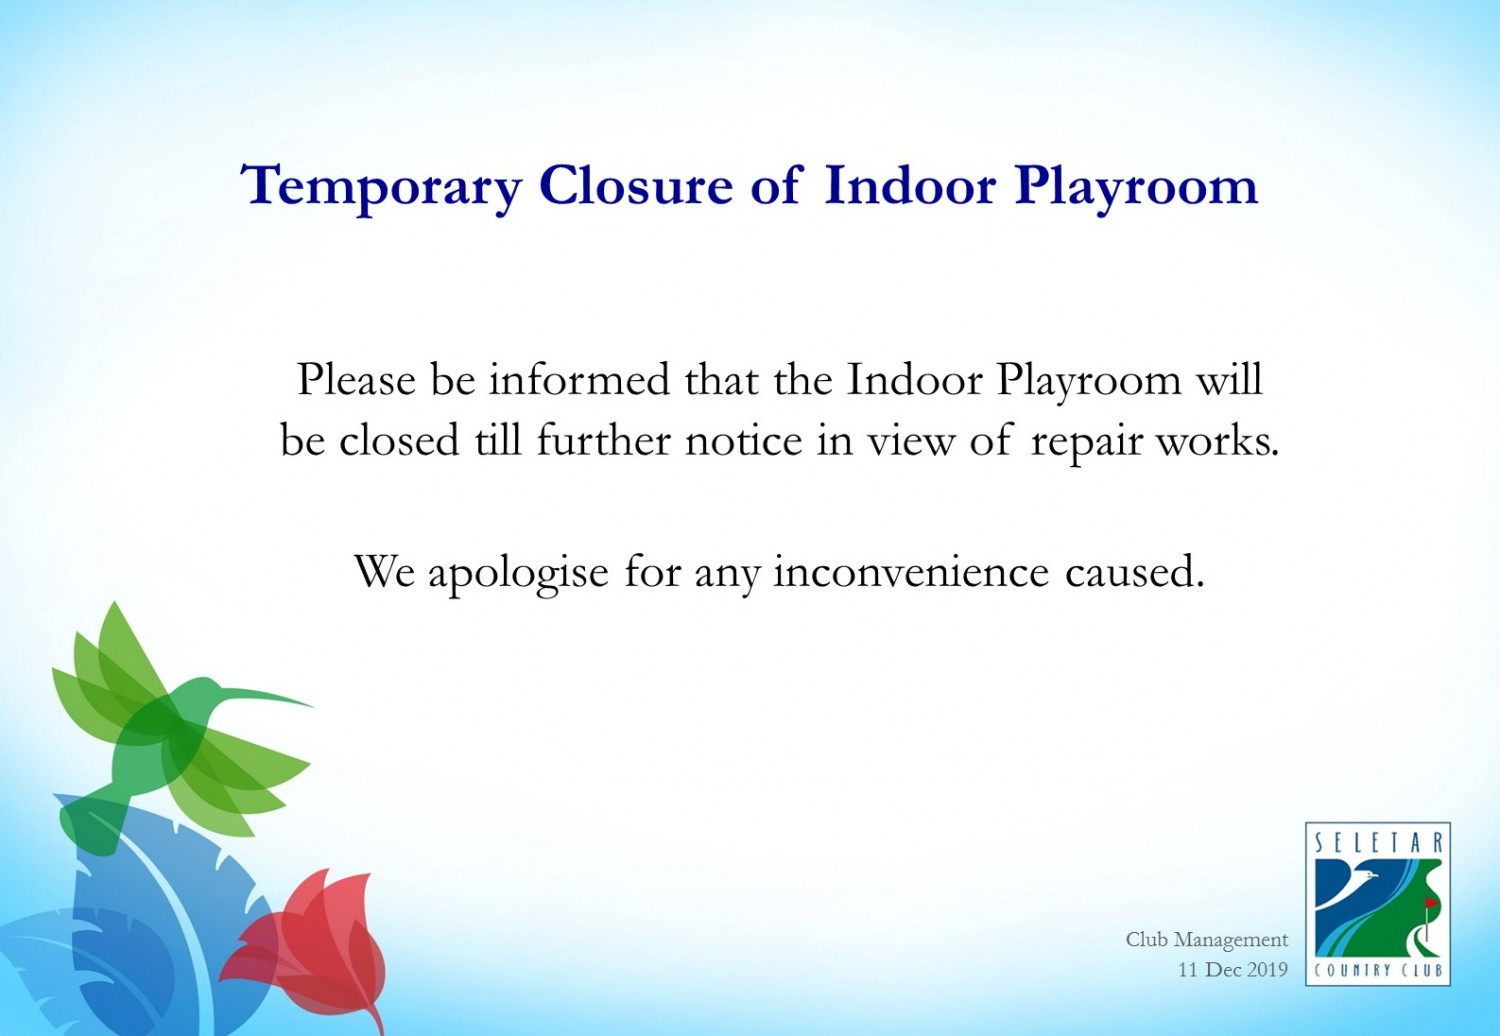 Temporary closure of indoor playroom_Dec2019